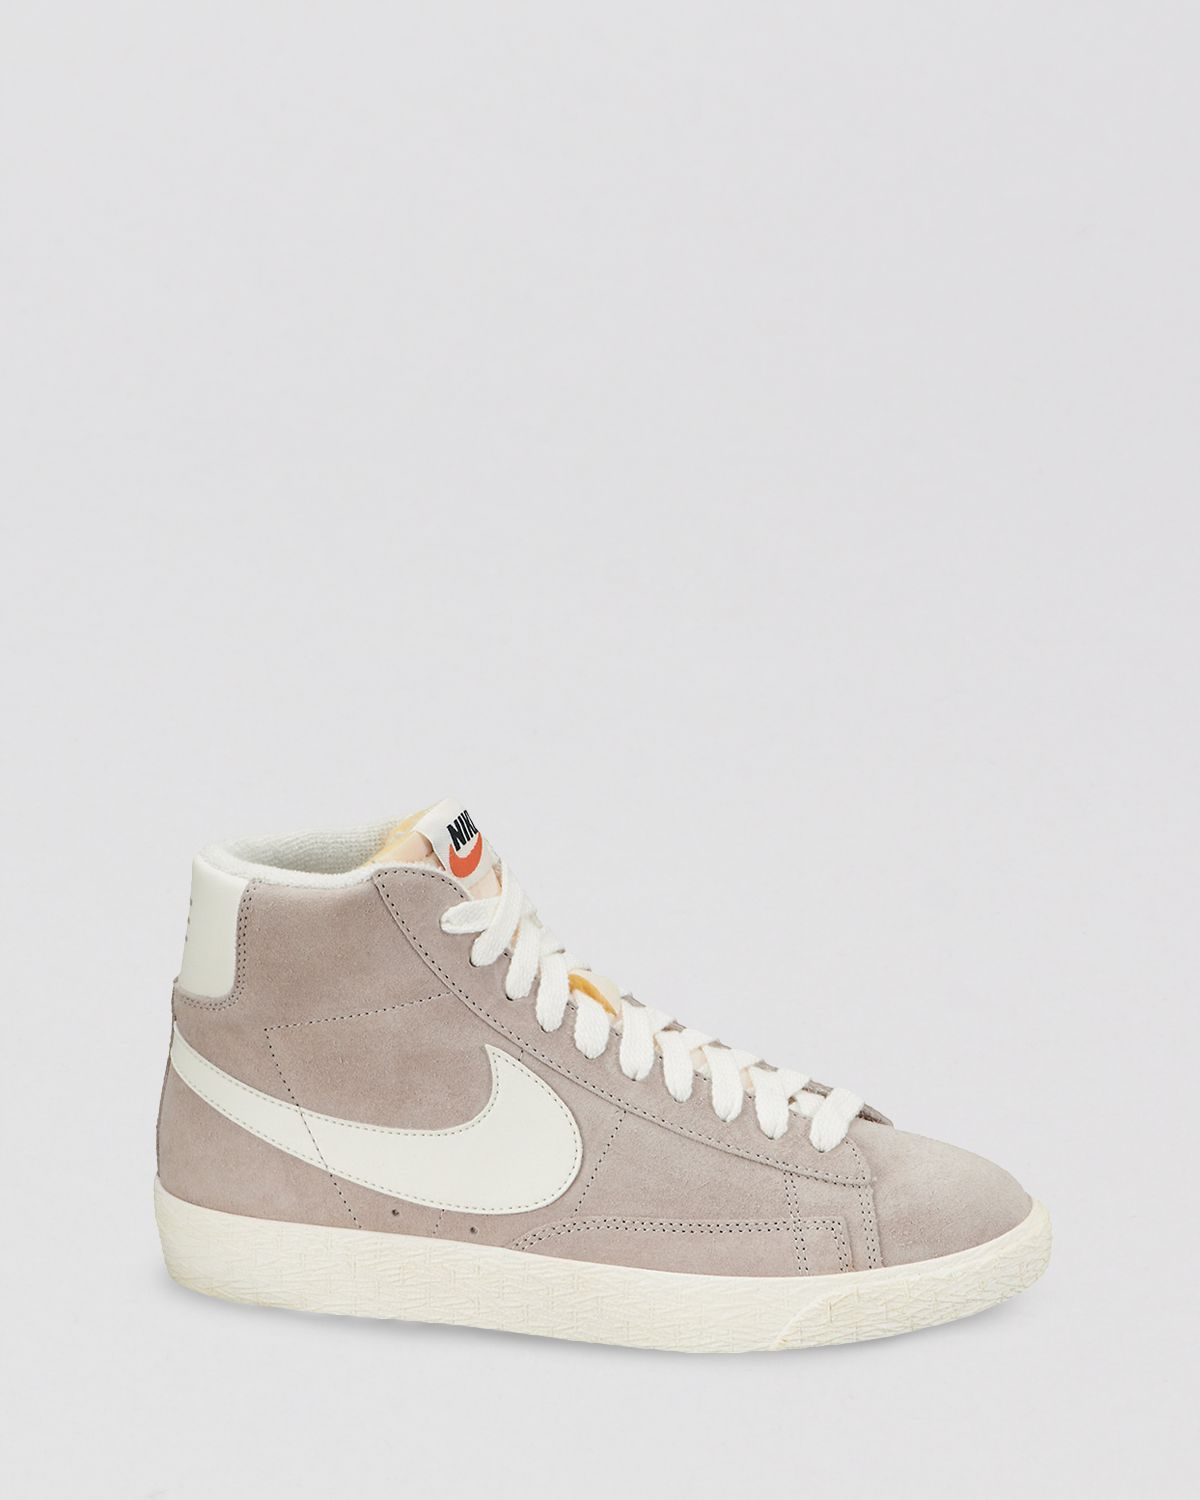 quality design 59a0c 41c74 Nike Lace Up High Top Sneakers - Women S Blazer Mid in Natural - Lyst